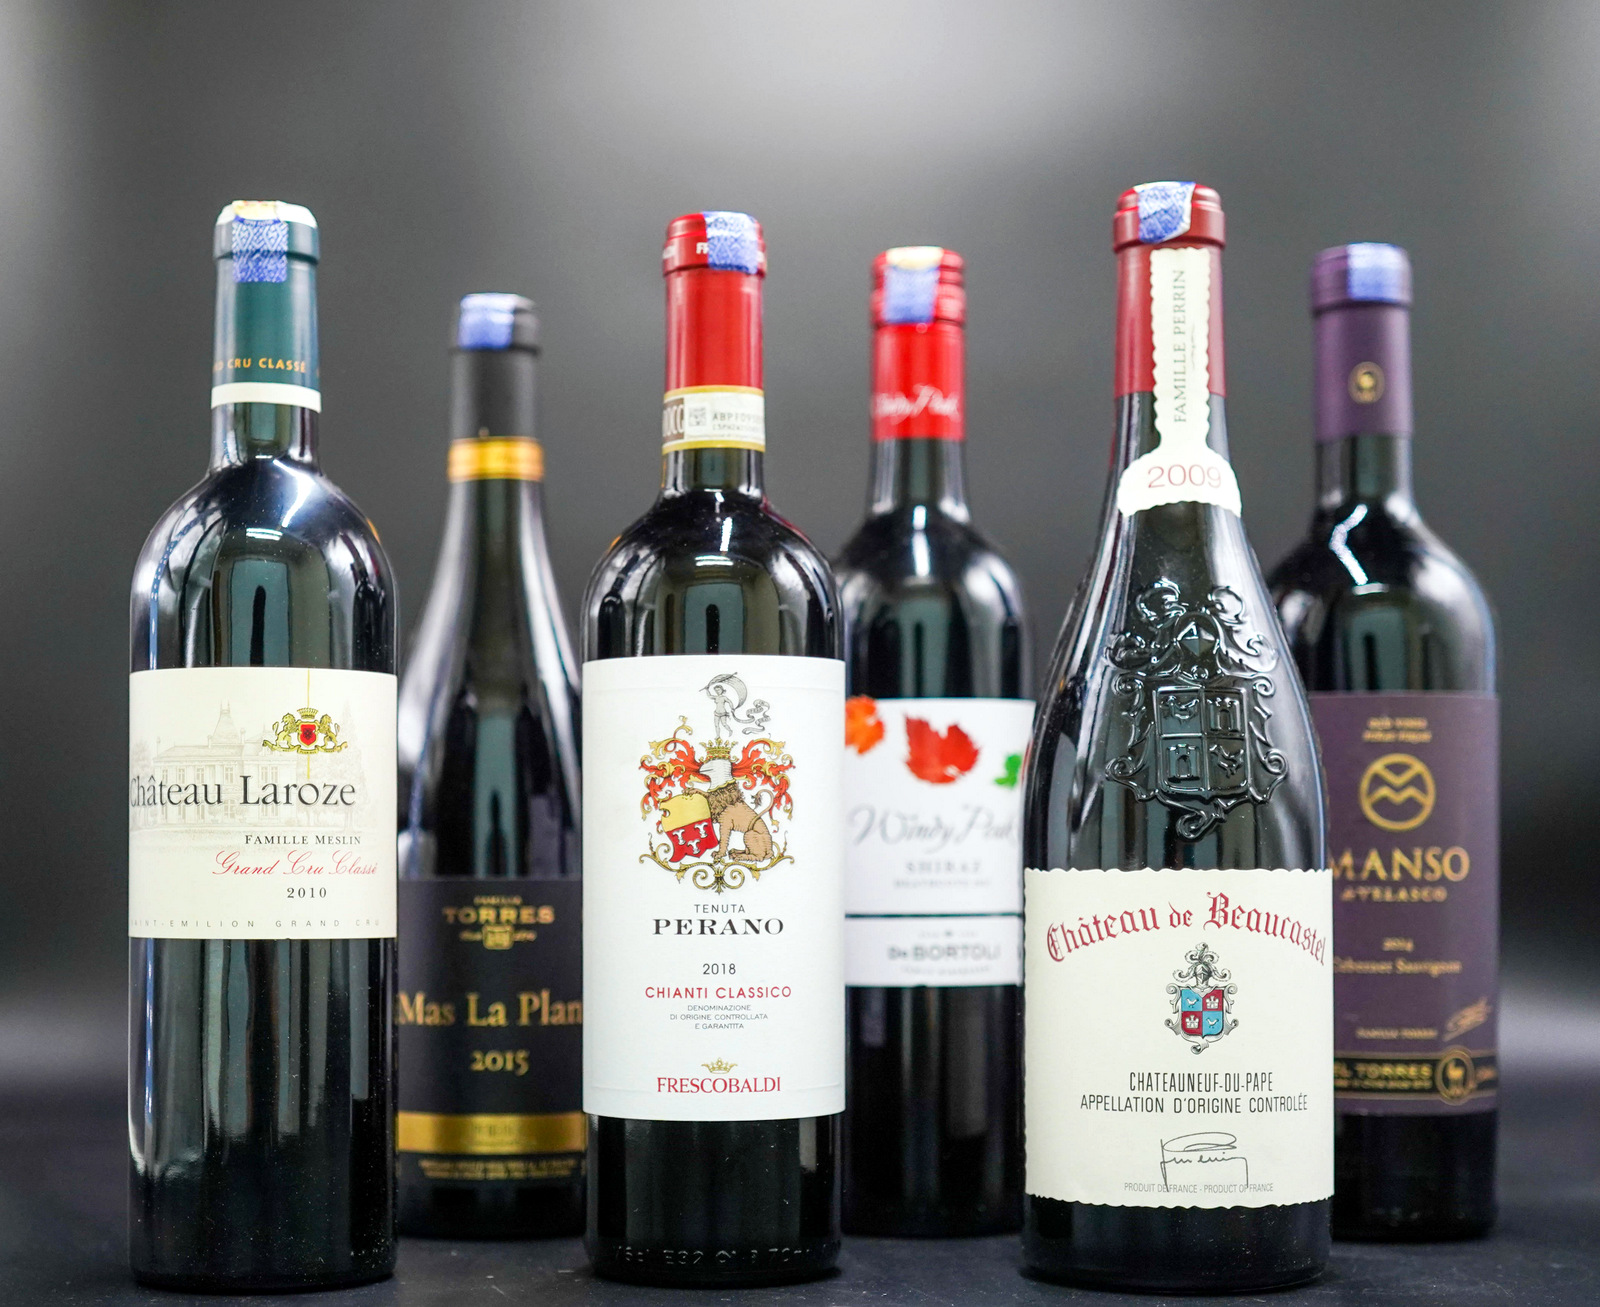 albert wines & spirits: malaysia's trusted importer embraces three decades of change & challenges